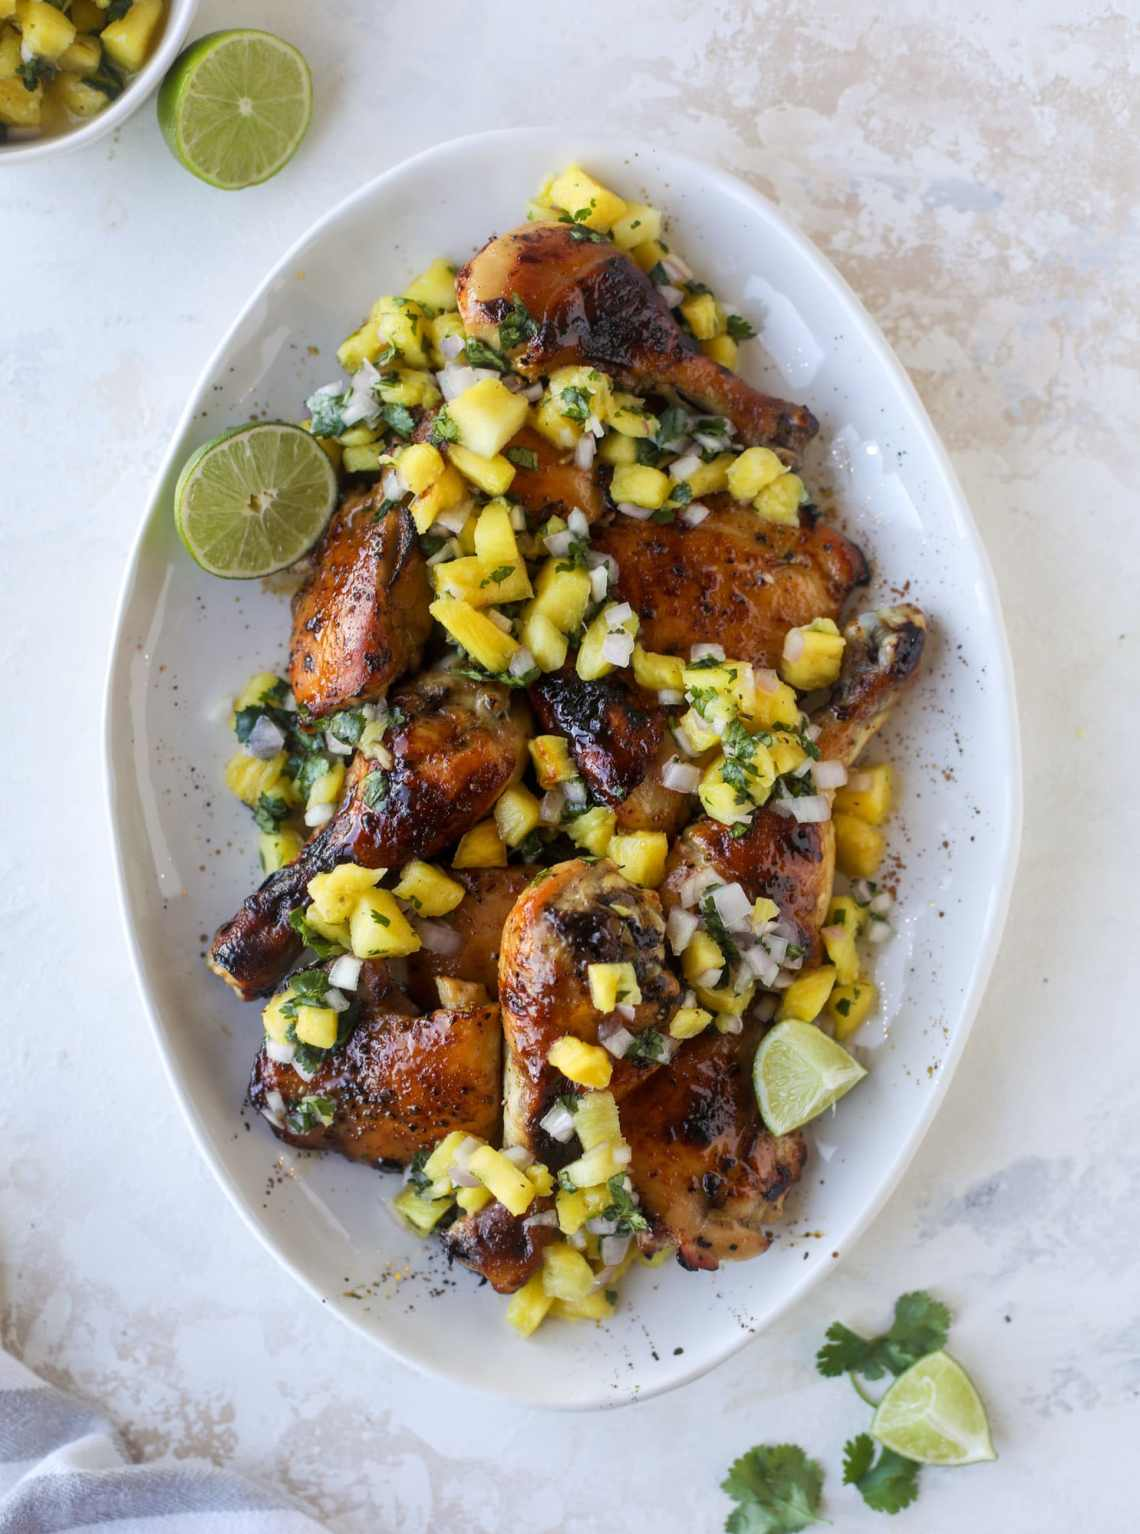 This sticky chicken recipe is made on a sheet pan and roasted until flavorfor and sticky with sauce, then served with pineapple salsa. It's the best! I howsweeteats.com #sticky #chicken